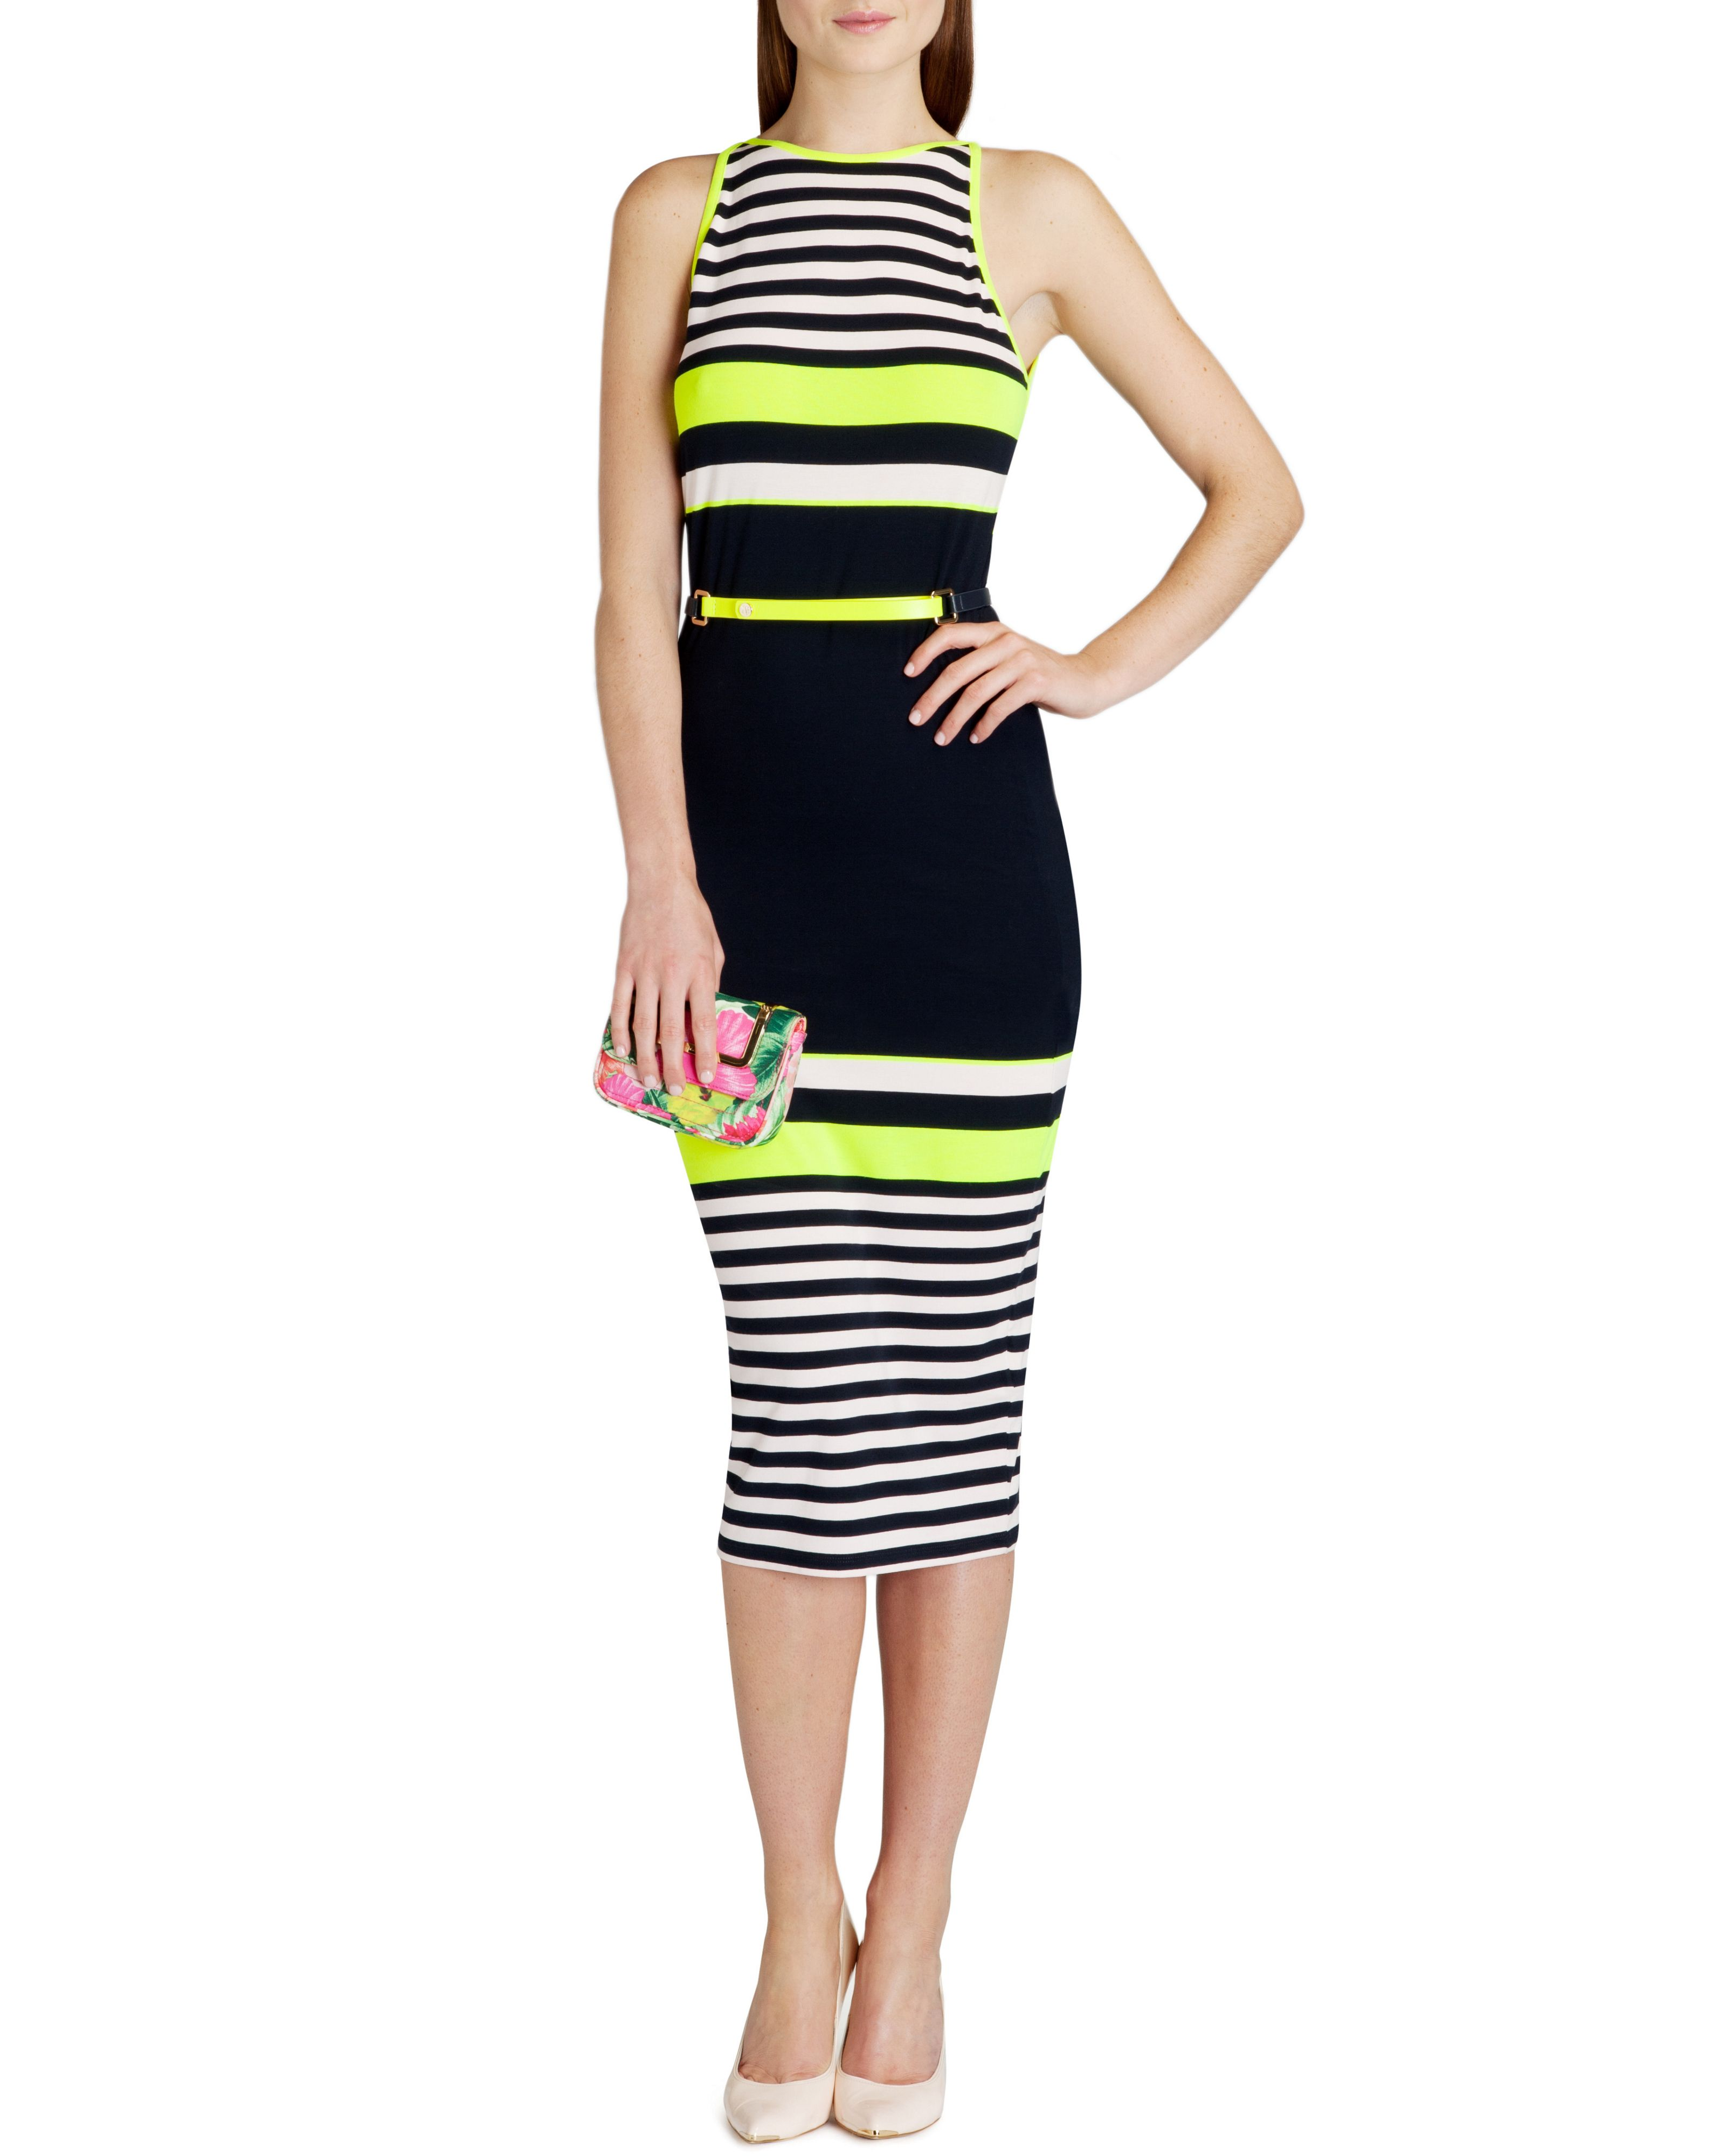 Abiee candy stripe print dress